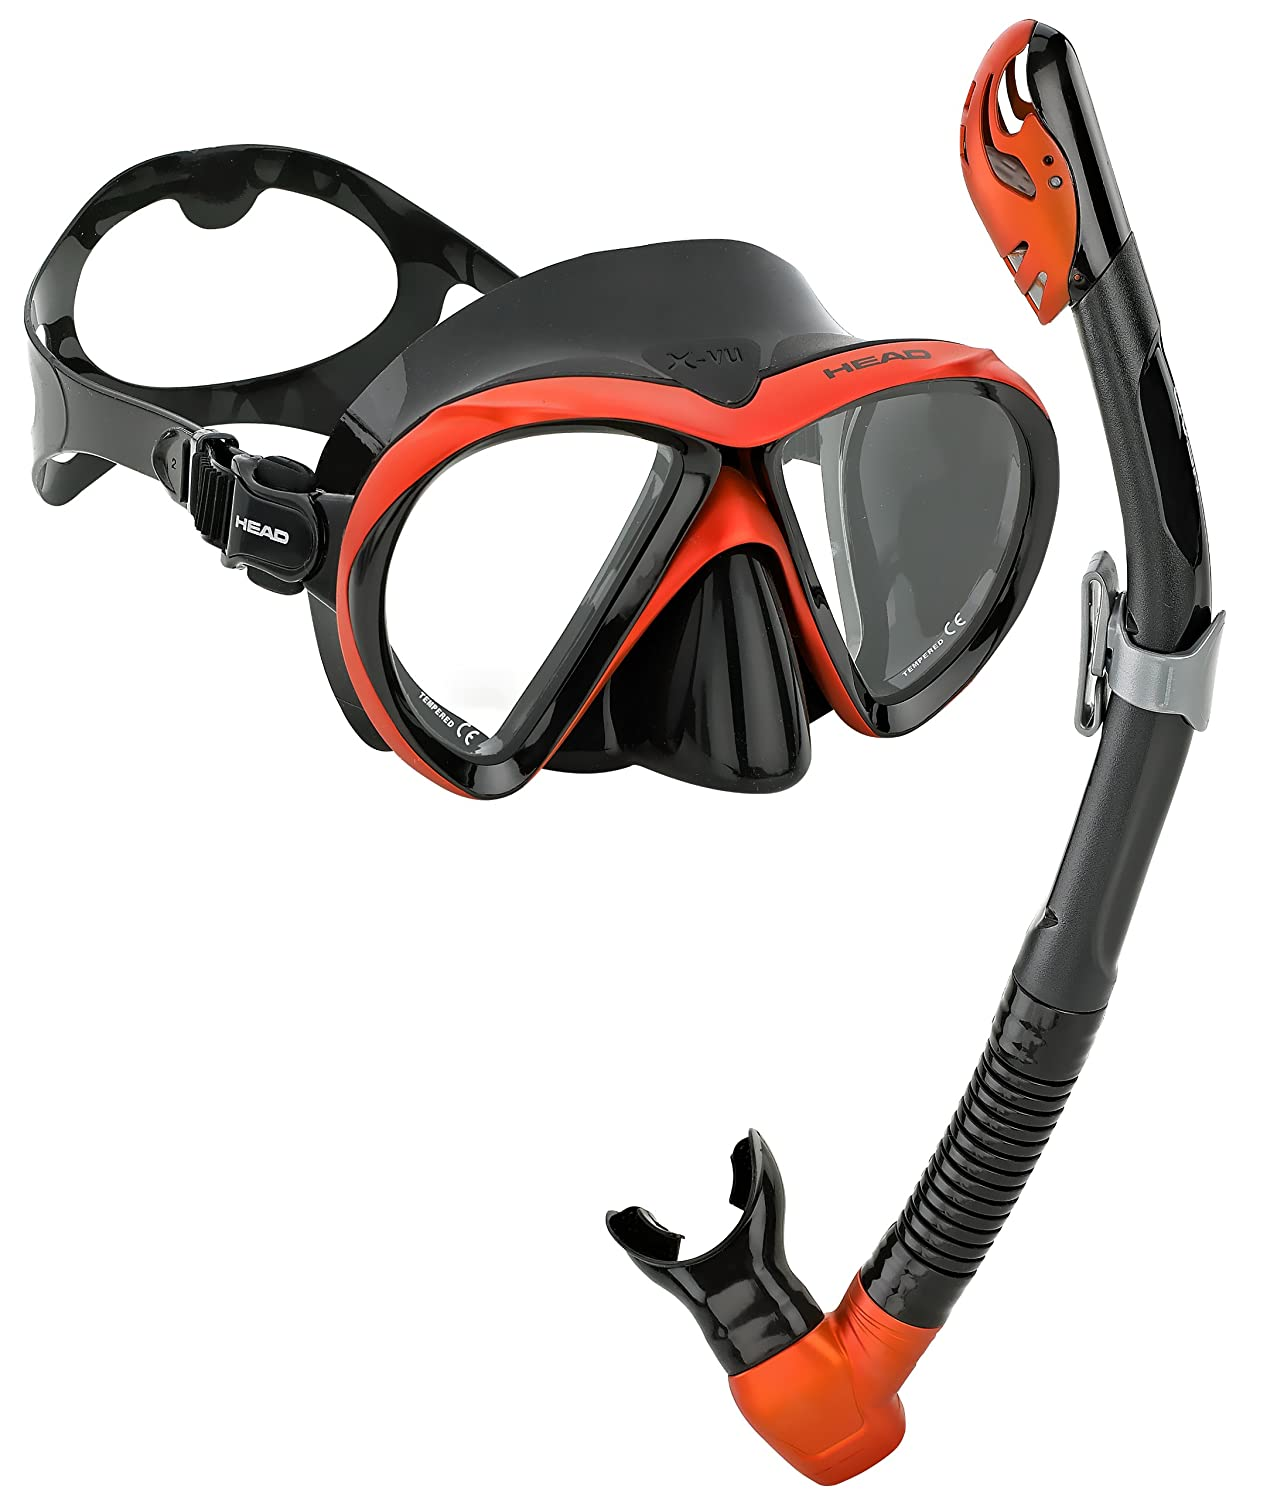 Head by Mares Scuba Snorkeling LiquidSkin Dive Mask Dry Snorkel Set Combo Kit